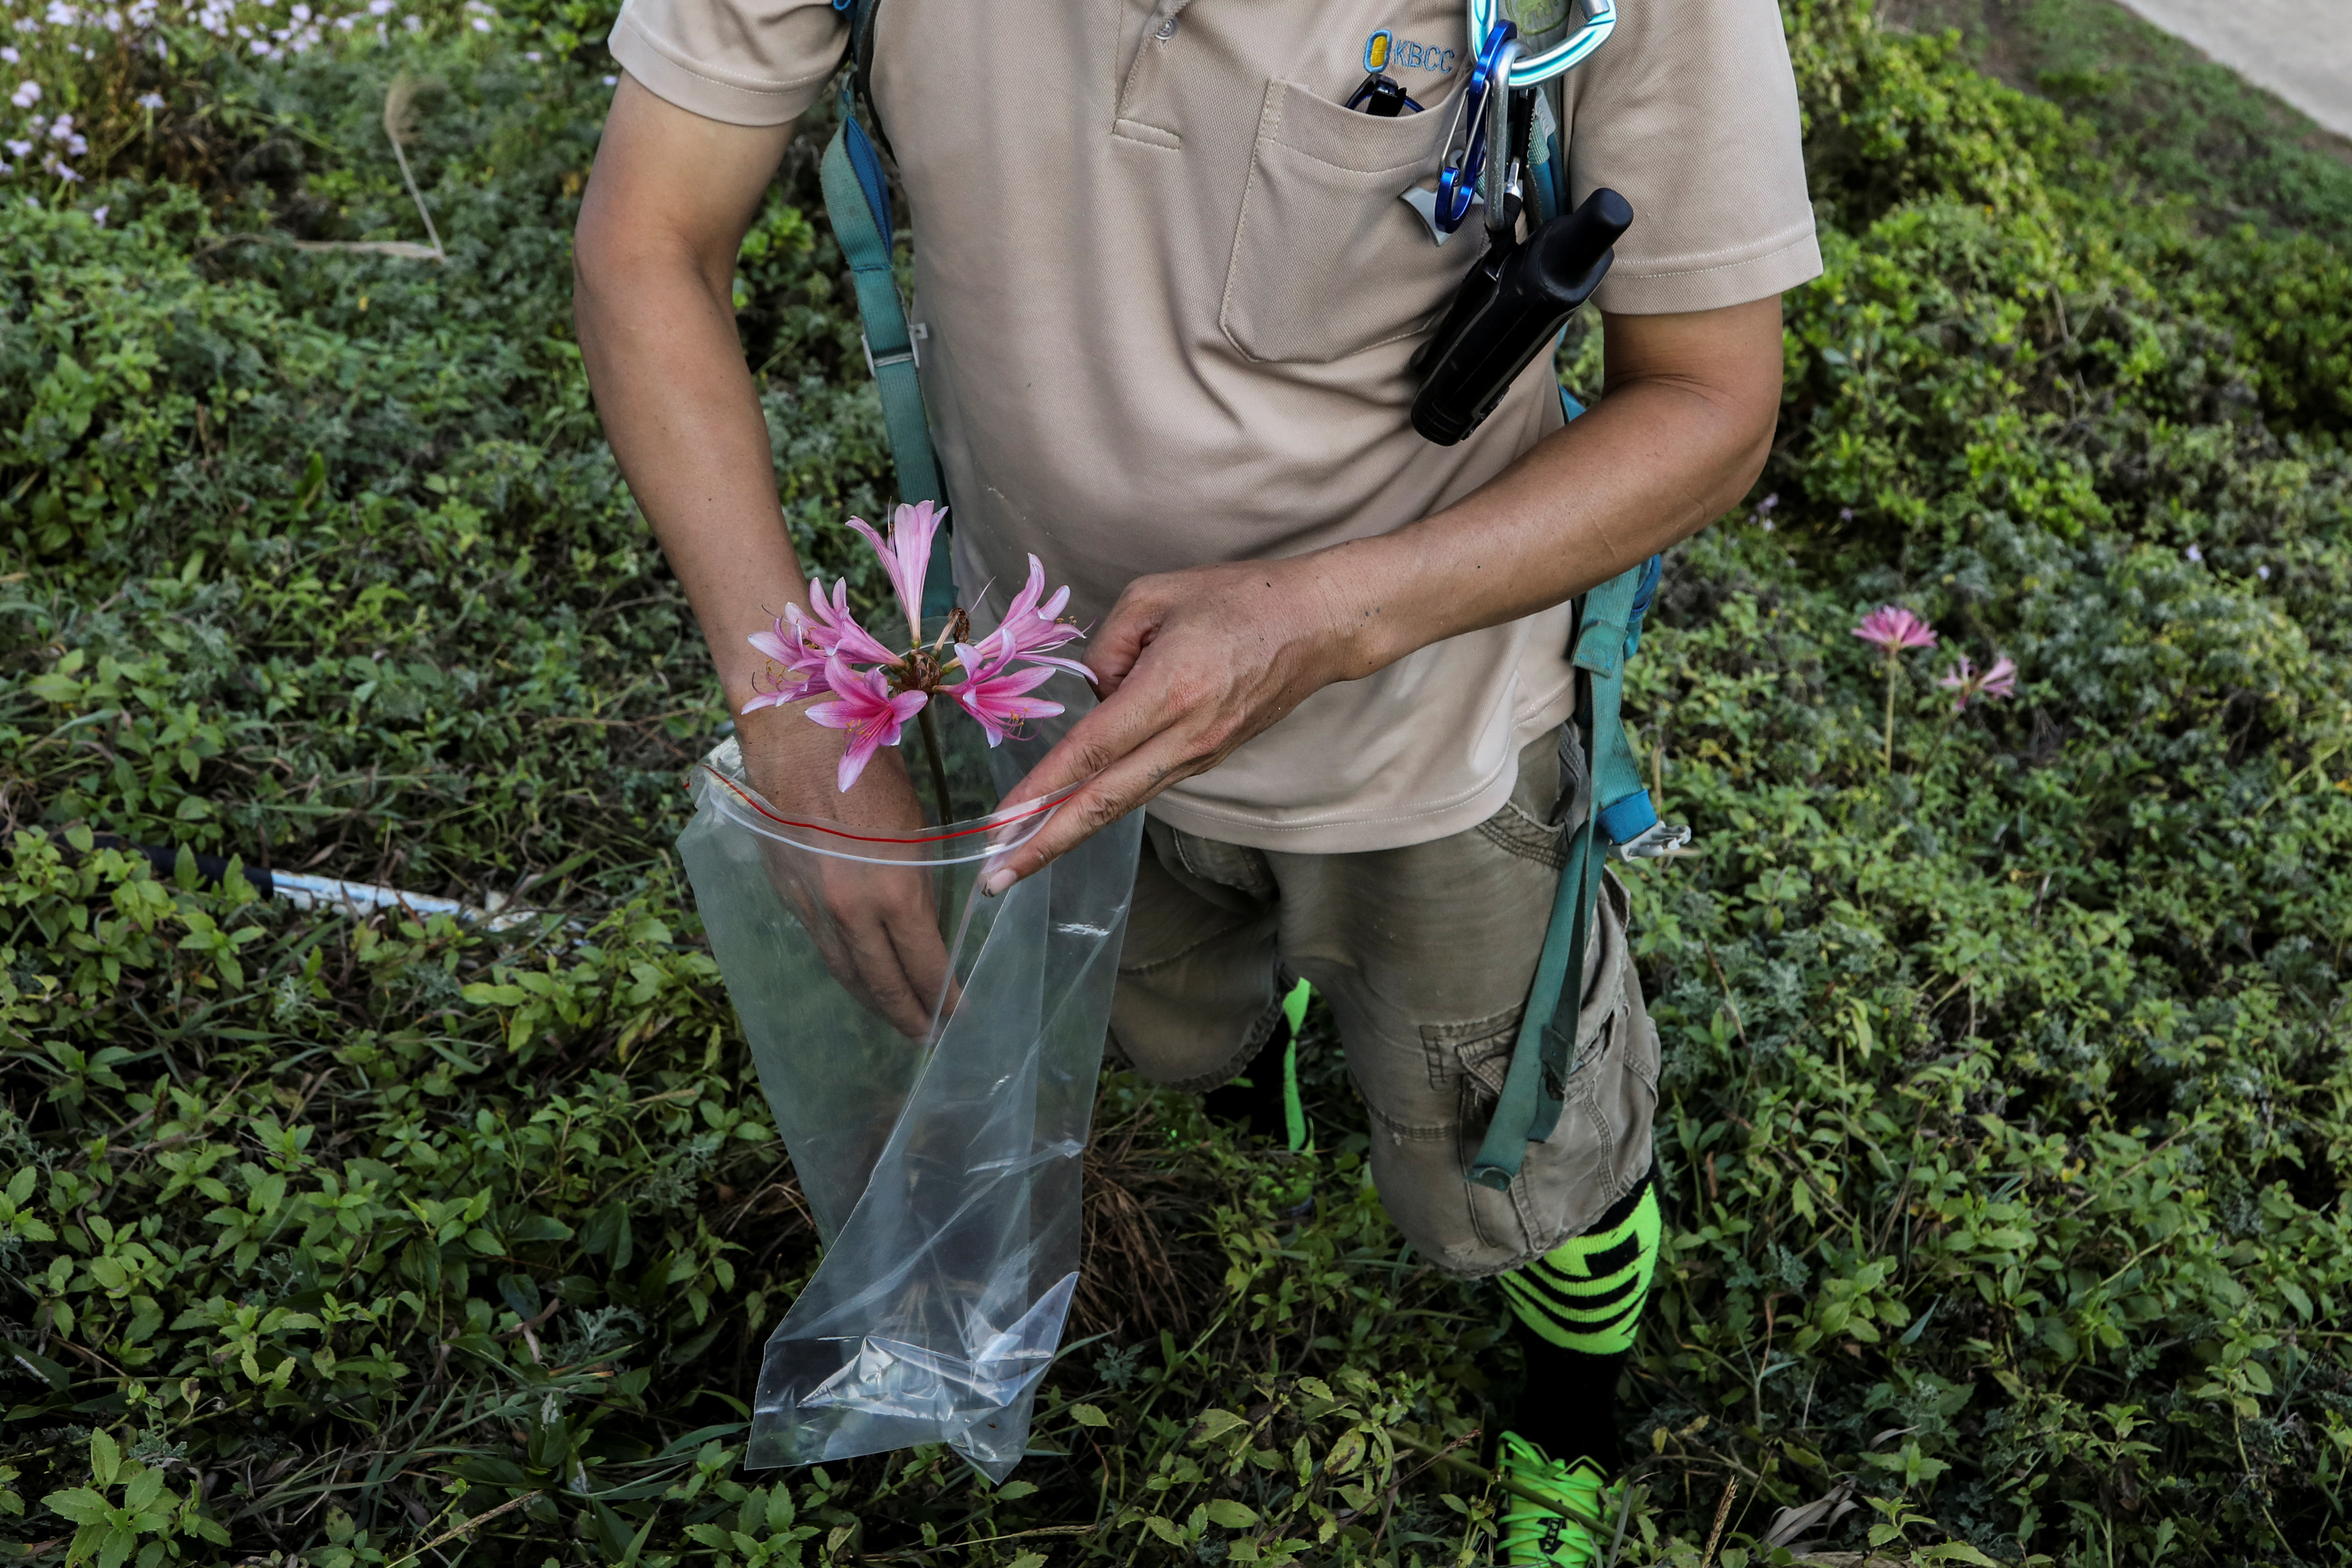 """Hung Hsin-Chieh, a research assistant at Dr. Cecilia Koo Botanic Conservation Center, collects Lycoris sprengeri, a type of flower, in Dongyin, Matsu, Taiwan, August 17, 2020. REUTERS/Ann Wang     SEARCH """"WANG RARE PLANTS"""" FOR THIS STORY. SEARCH """"WIDER IMAGE"""" FOR ALL STORIES - RC2W2J94CC6F"""